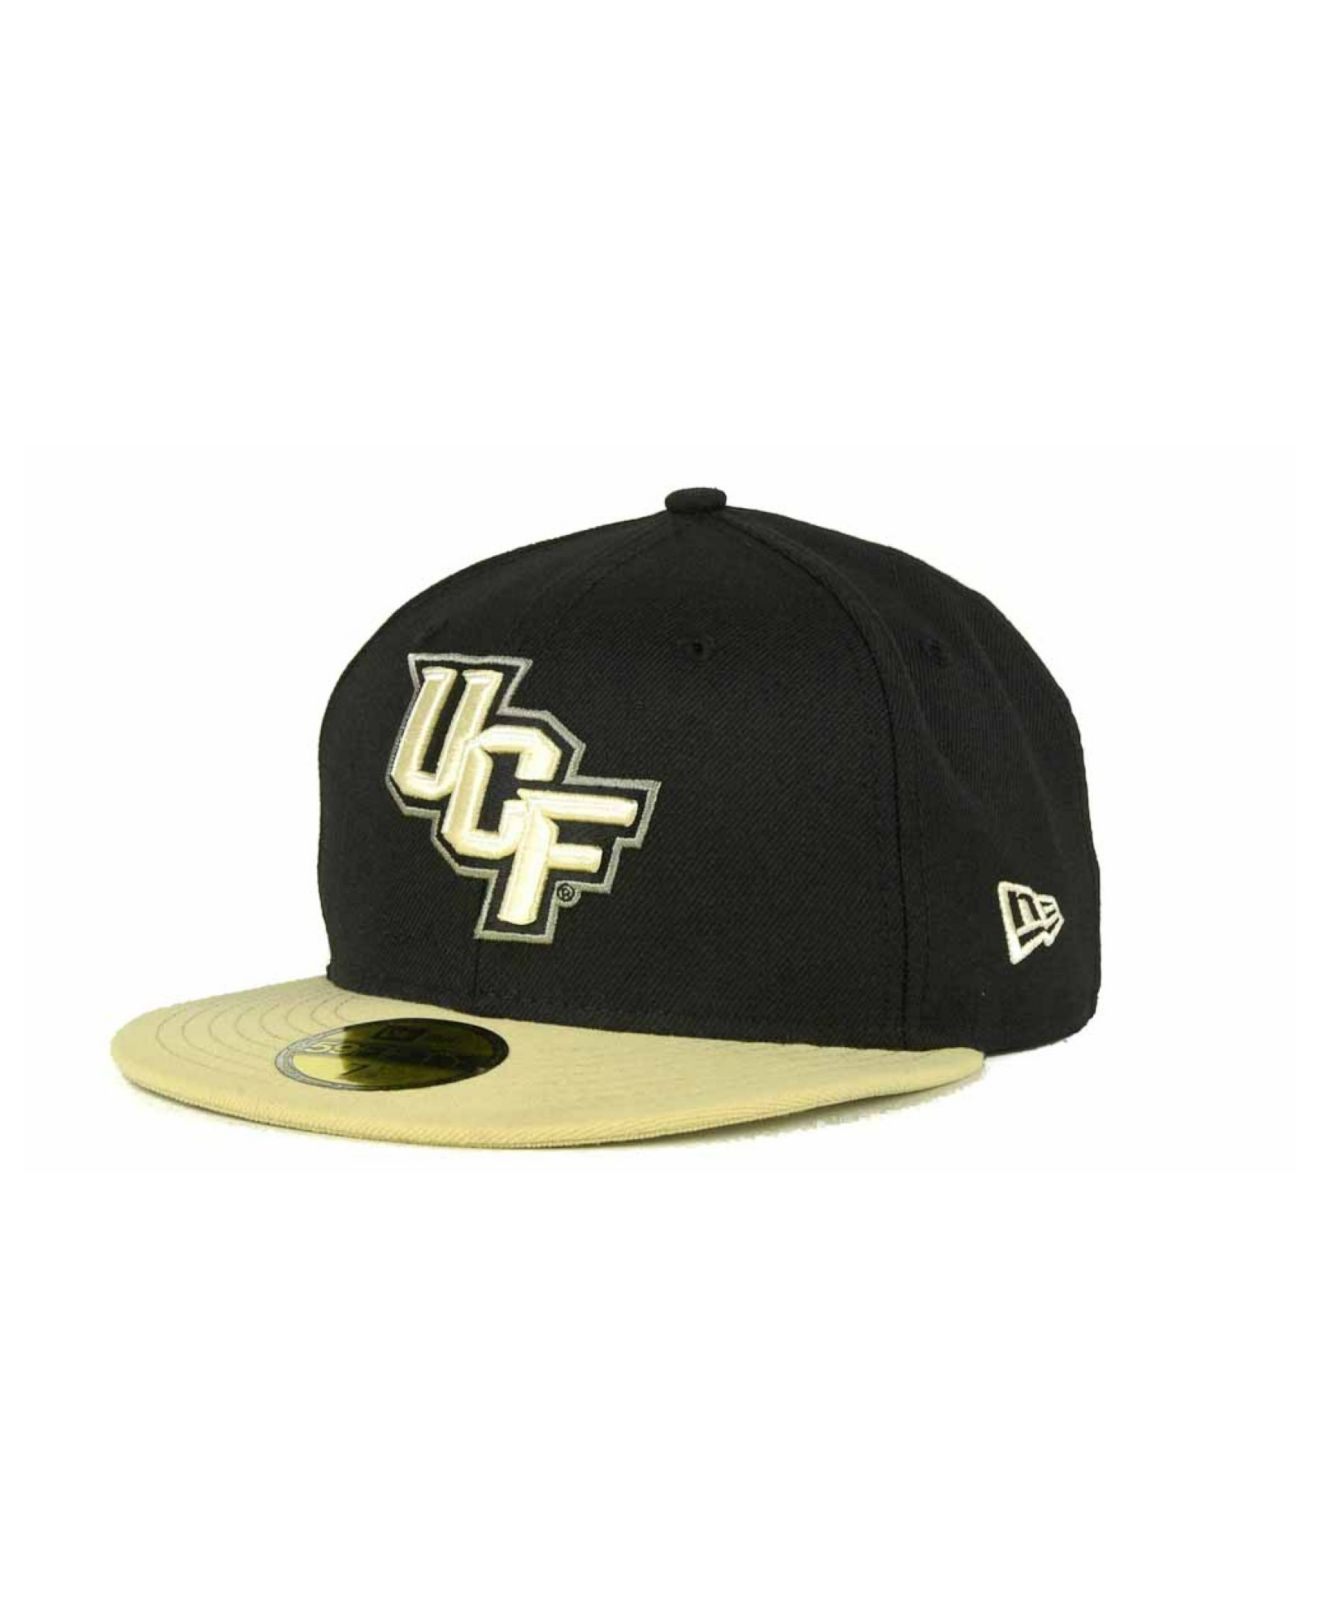 super popular 209ec 74afe ... store lyst ktz ucf knights 2 tone 59fifty cap in yellow for men f5798  e3bf7